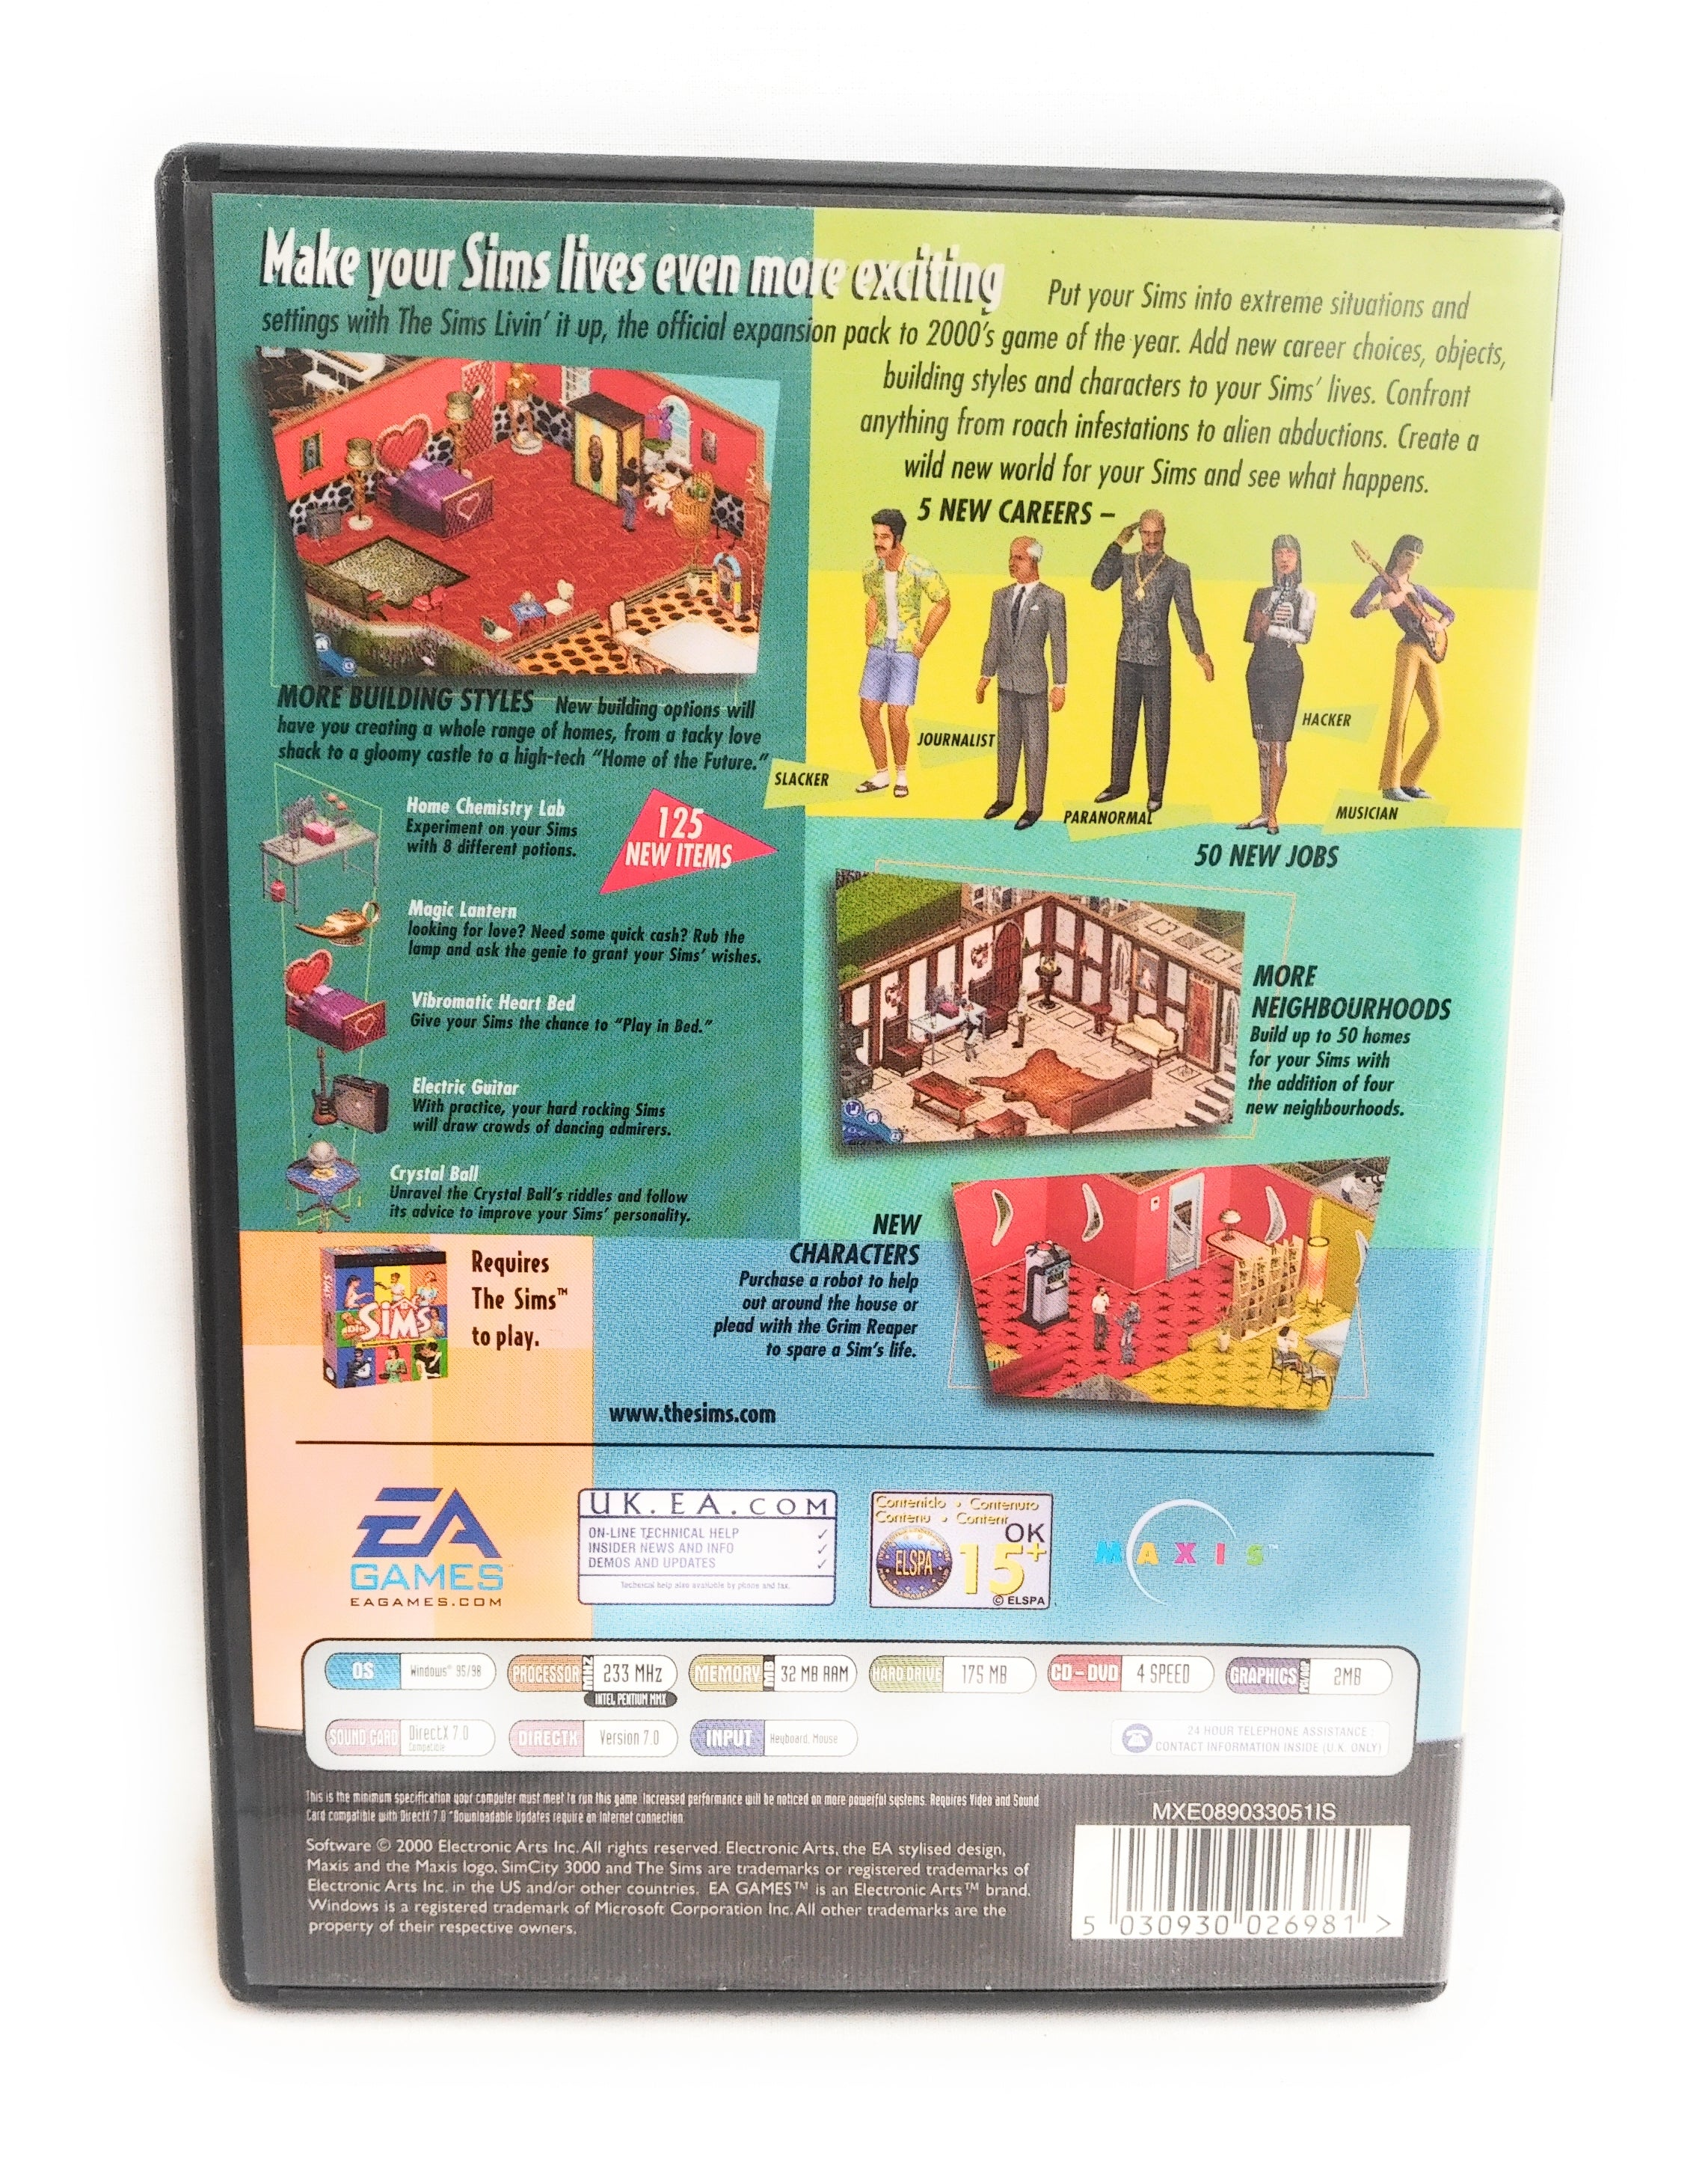 The Sims: Livin' It Up Expansion Pack (PC CD), Windows 98, Windows